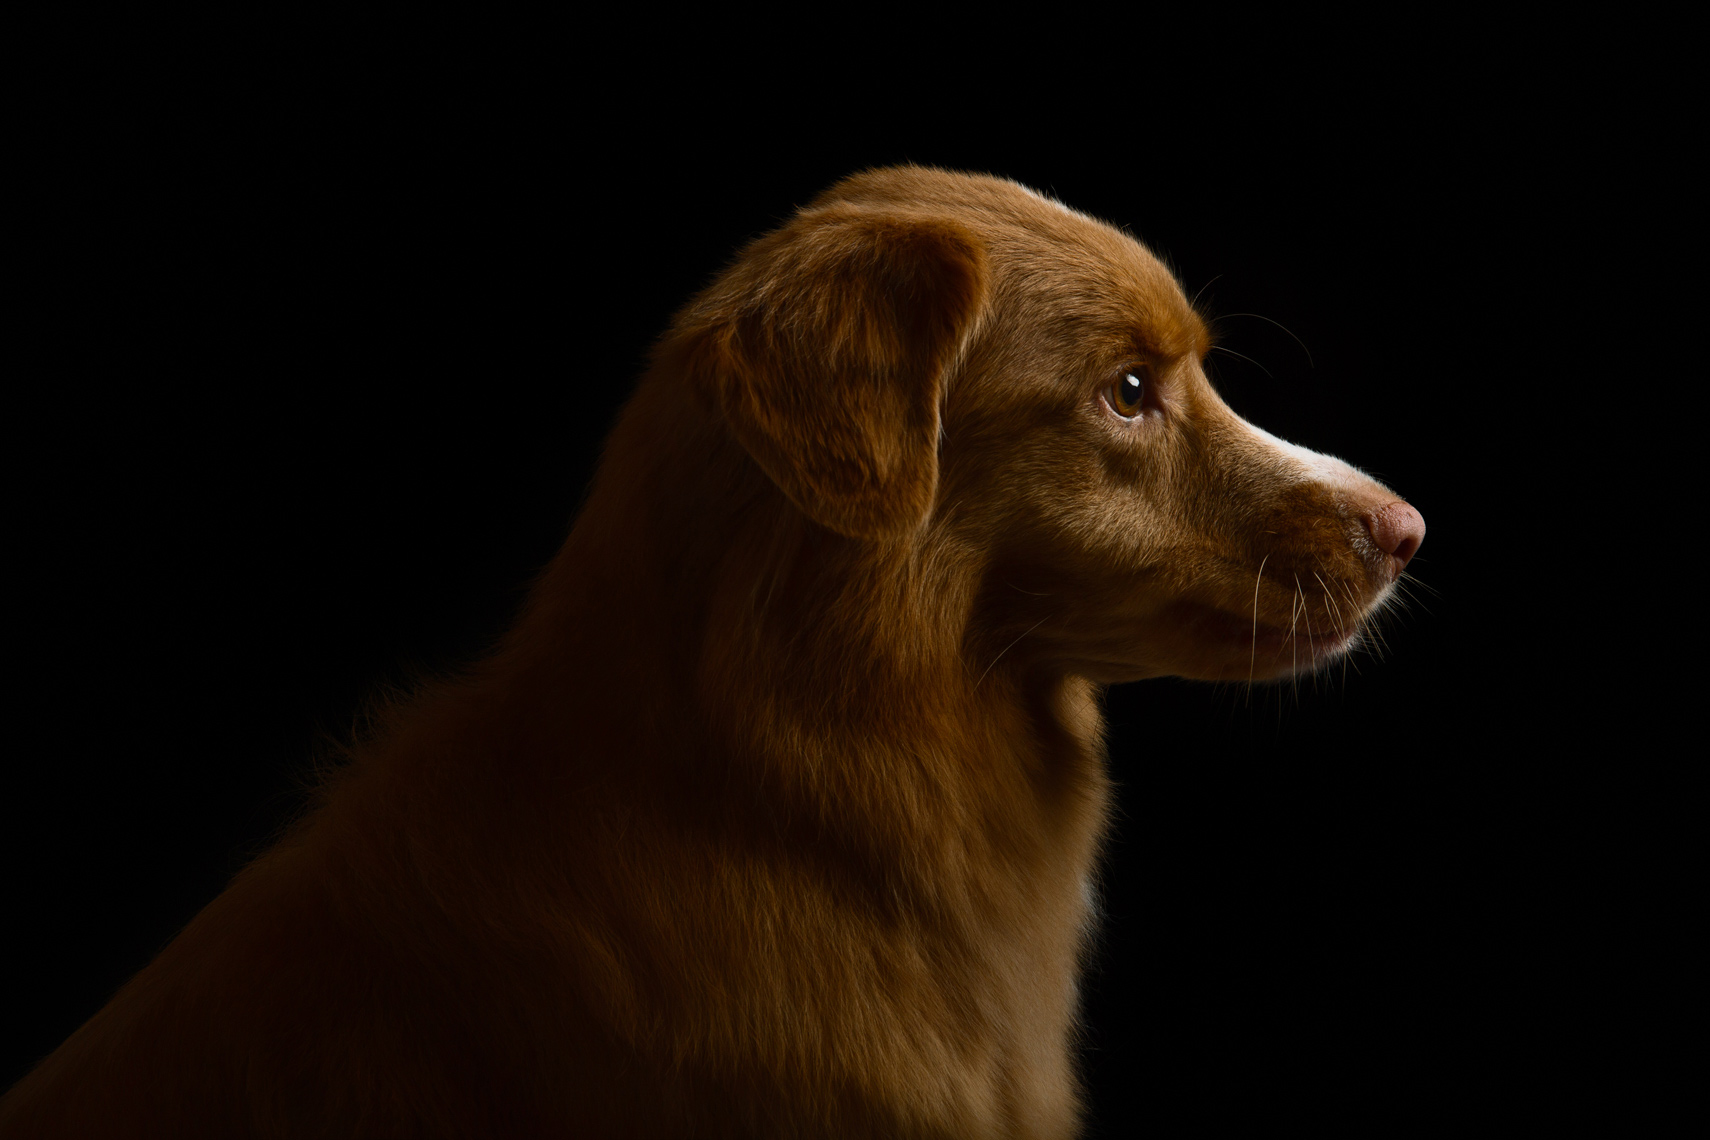 Nova Scotia Duck Tolling Retriever portrait